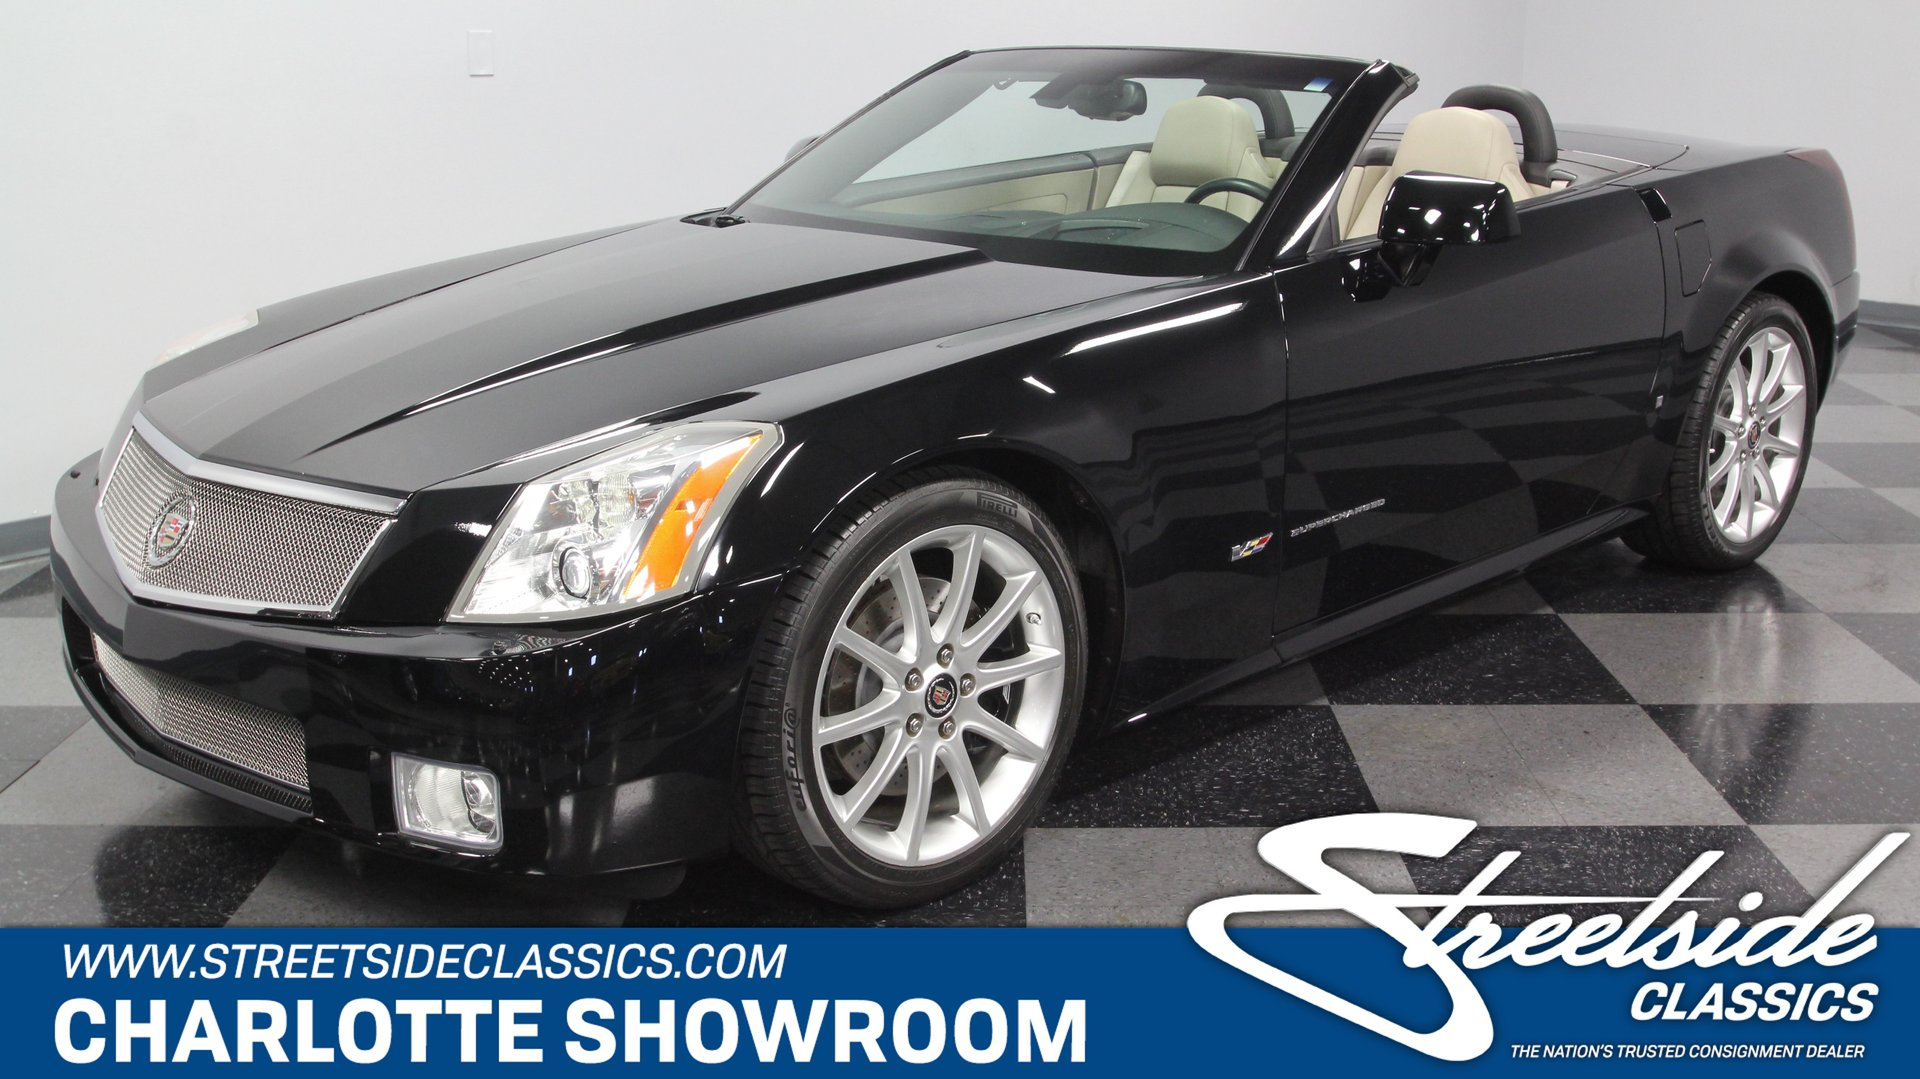 2006 Cadillac Xlr V Streetside Classics The Nation S Trusted